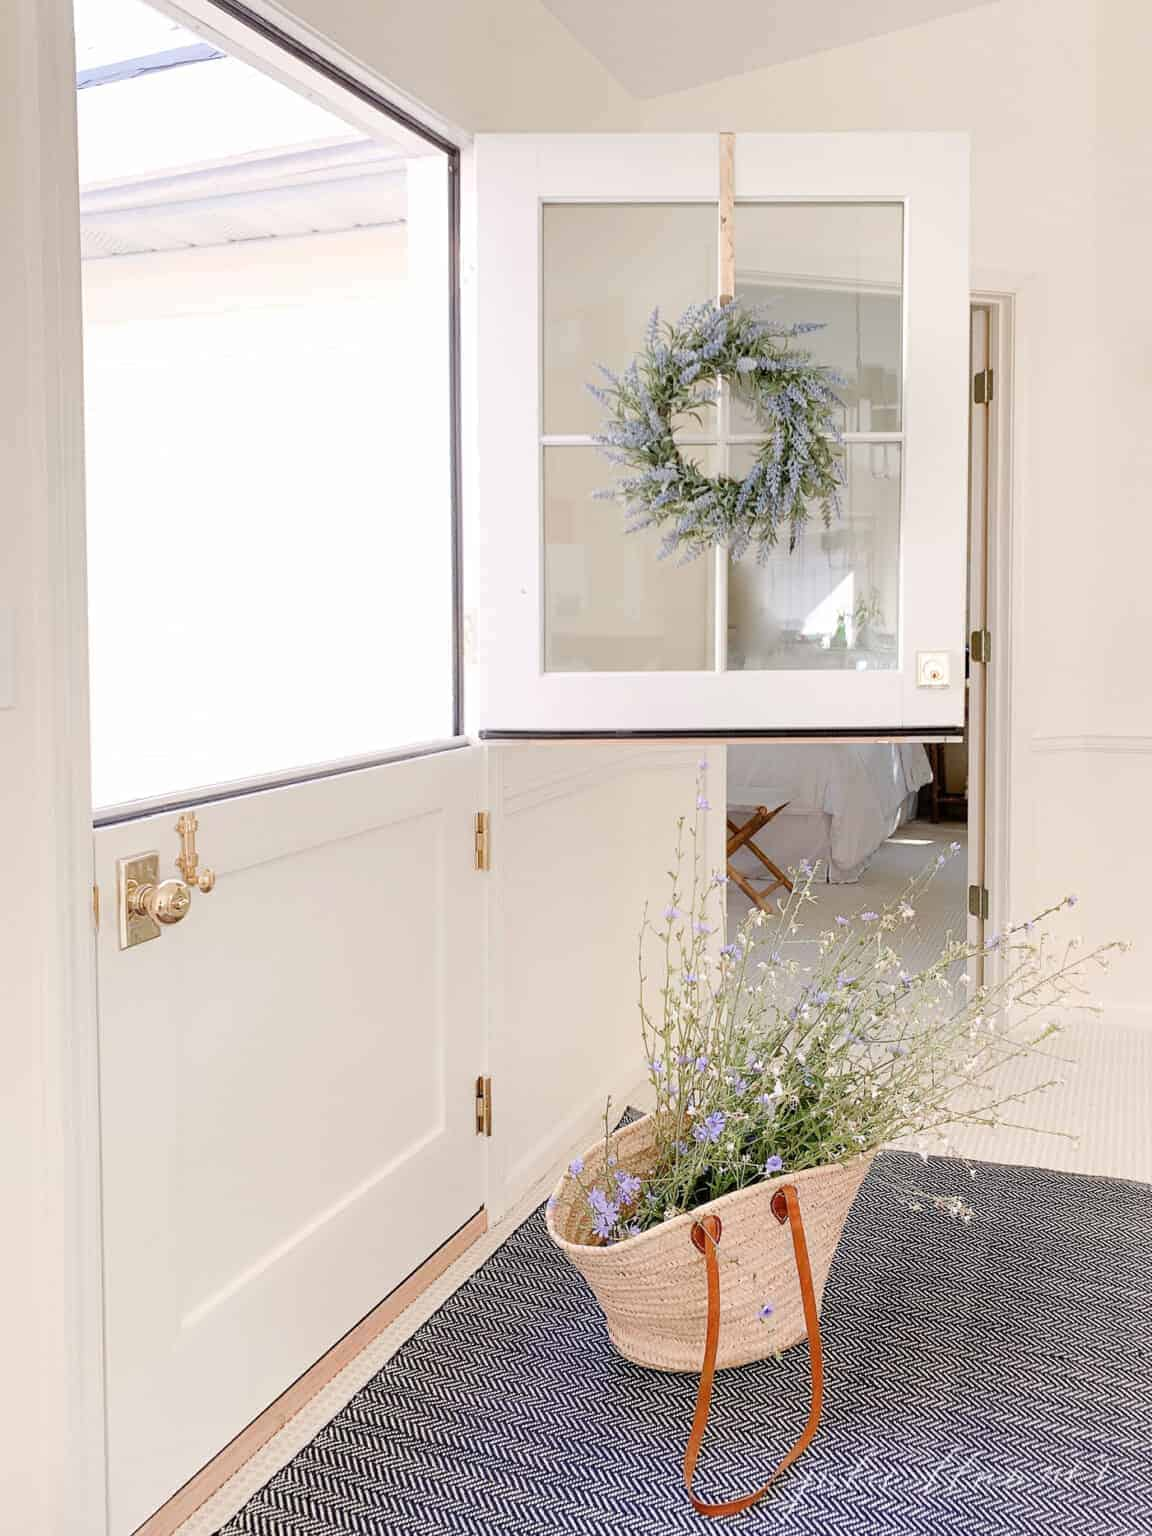 A white living room with large windows and a dutch door with the top half open.